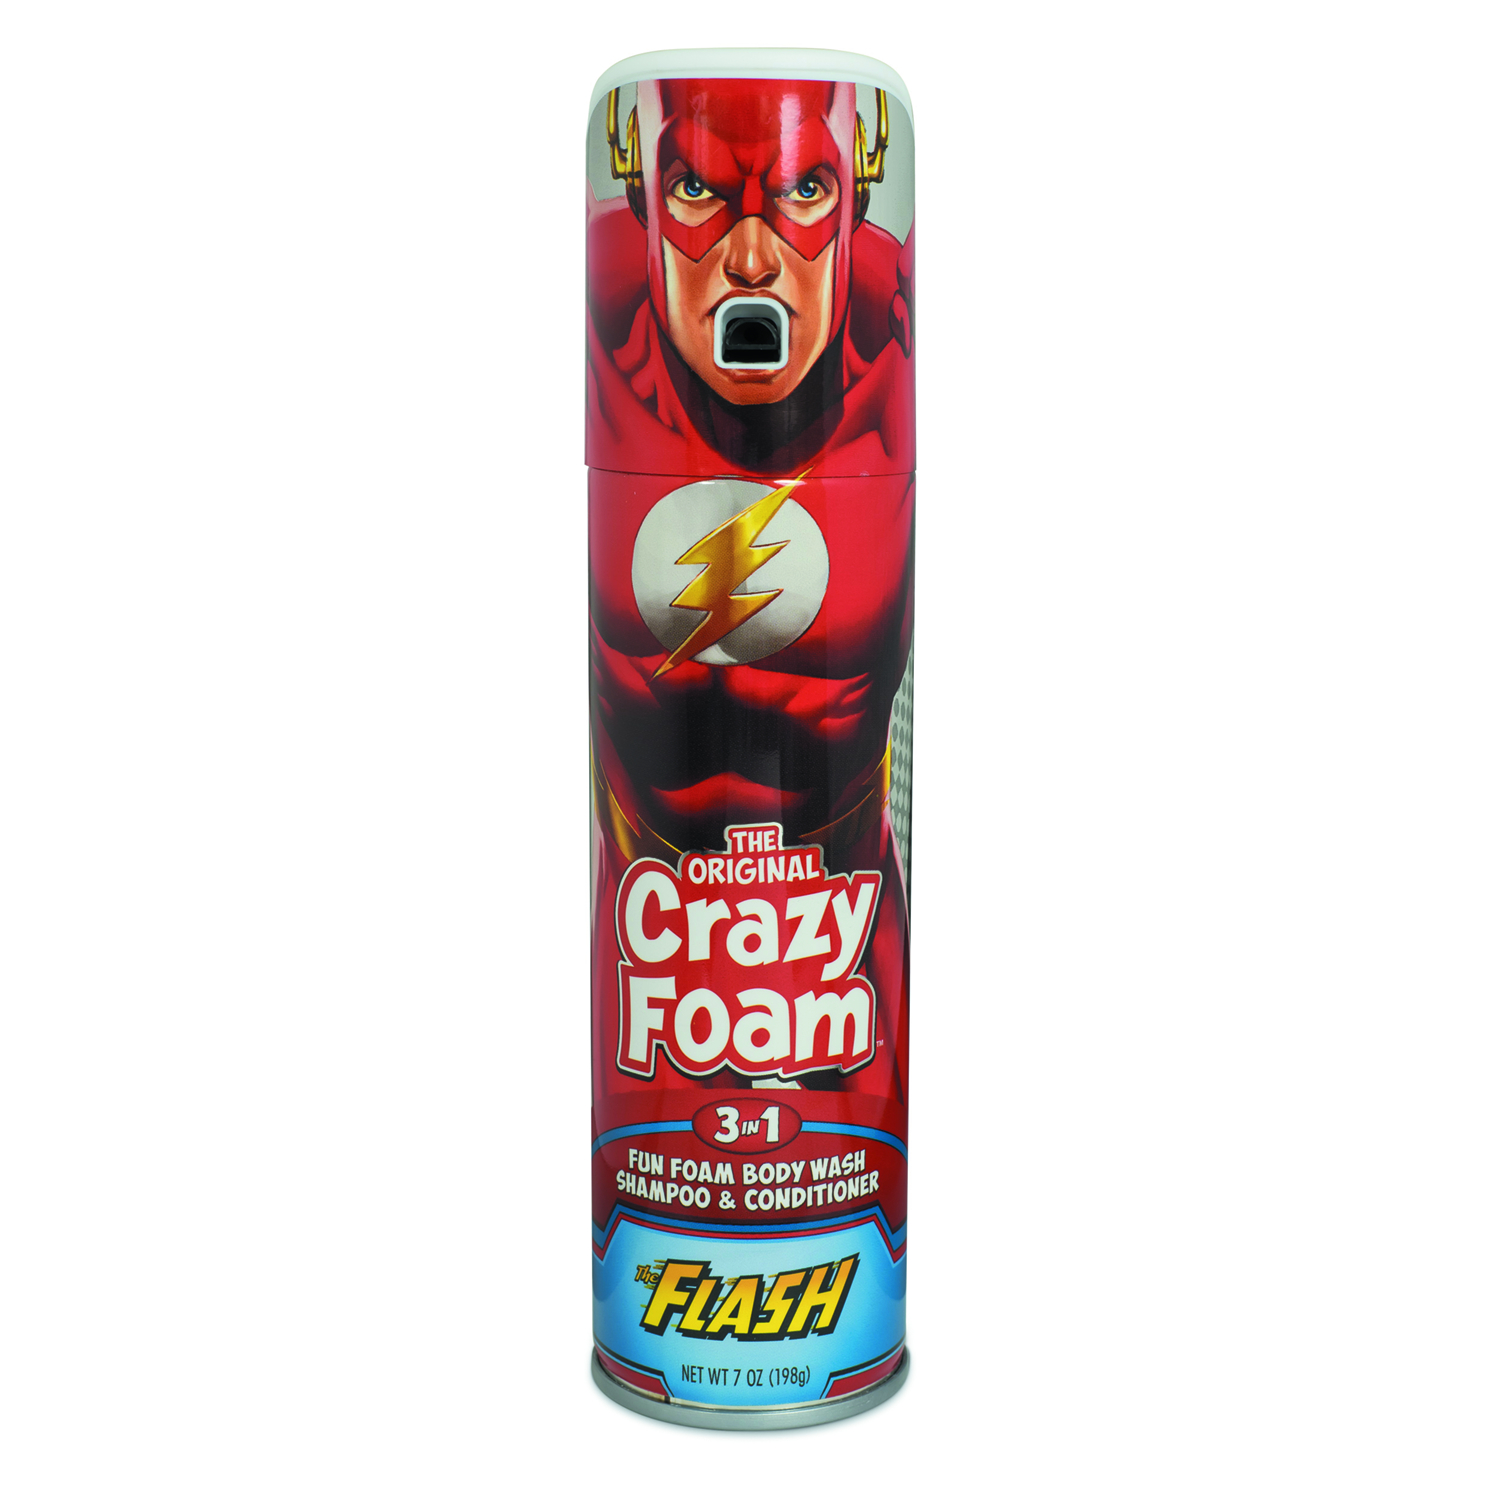 JUSTICE LEAGUE THE FLASH CRAZY FOAM